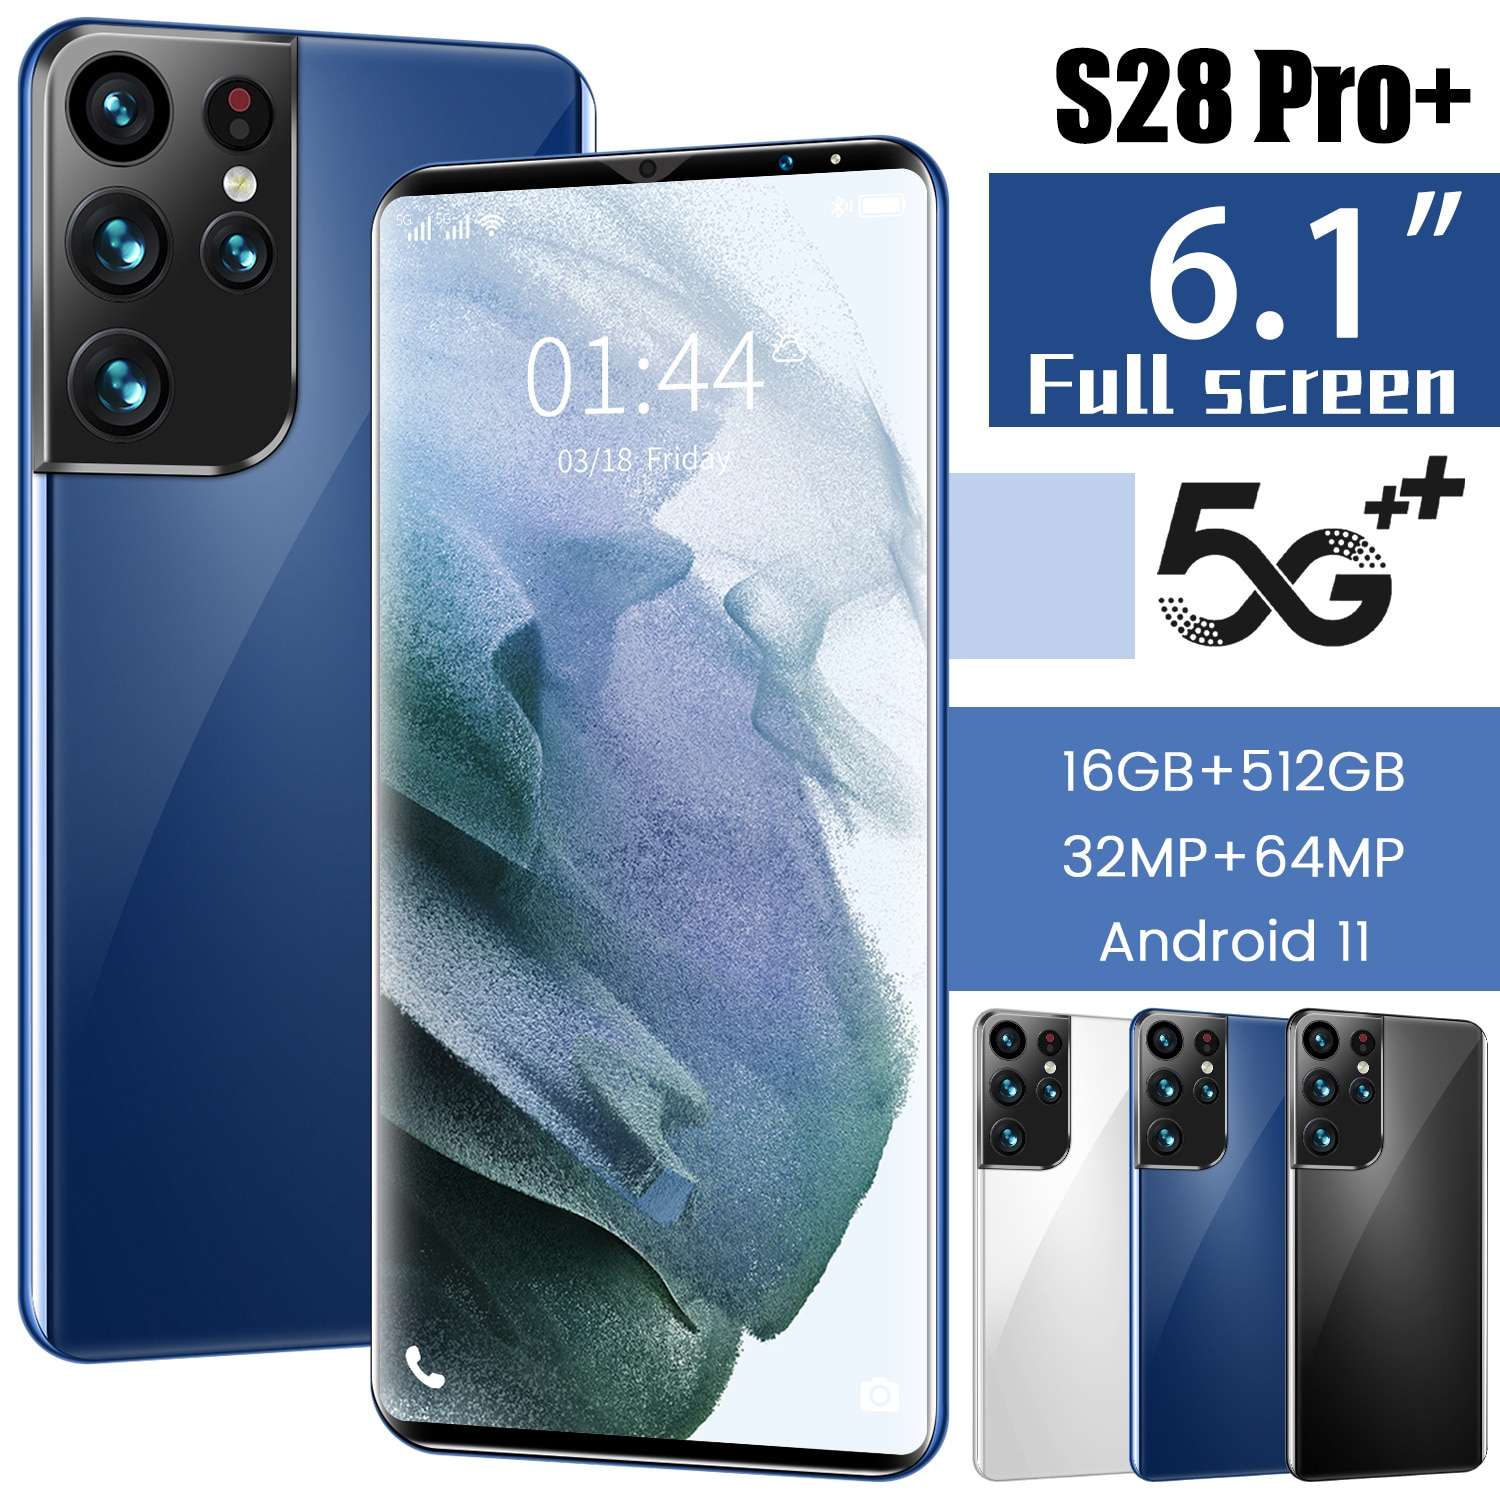 Global Hot Sale S28 Pro+ 5G 1440*3200 6.1' Full Screen 16 512GB 6000mAh Face Recognition Multi-Language Support Smartphone